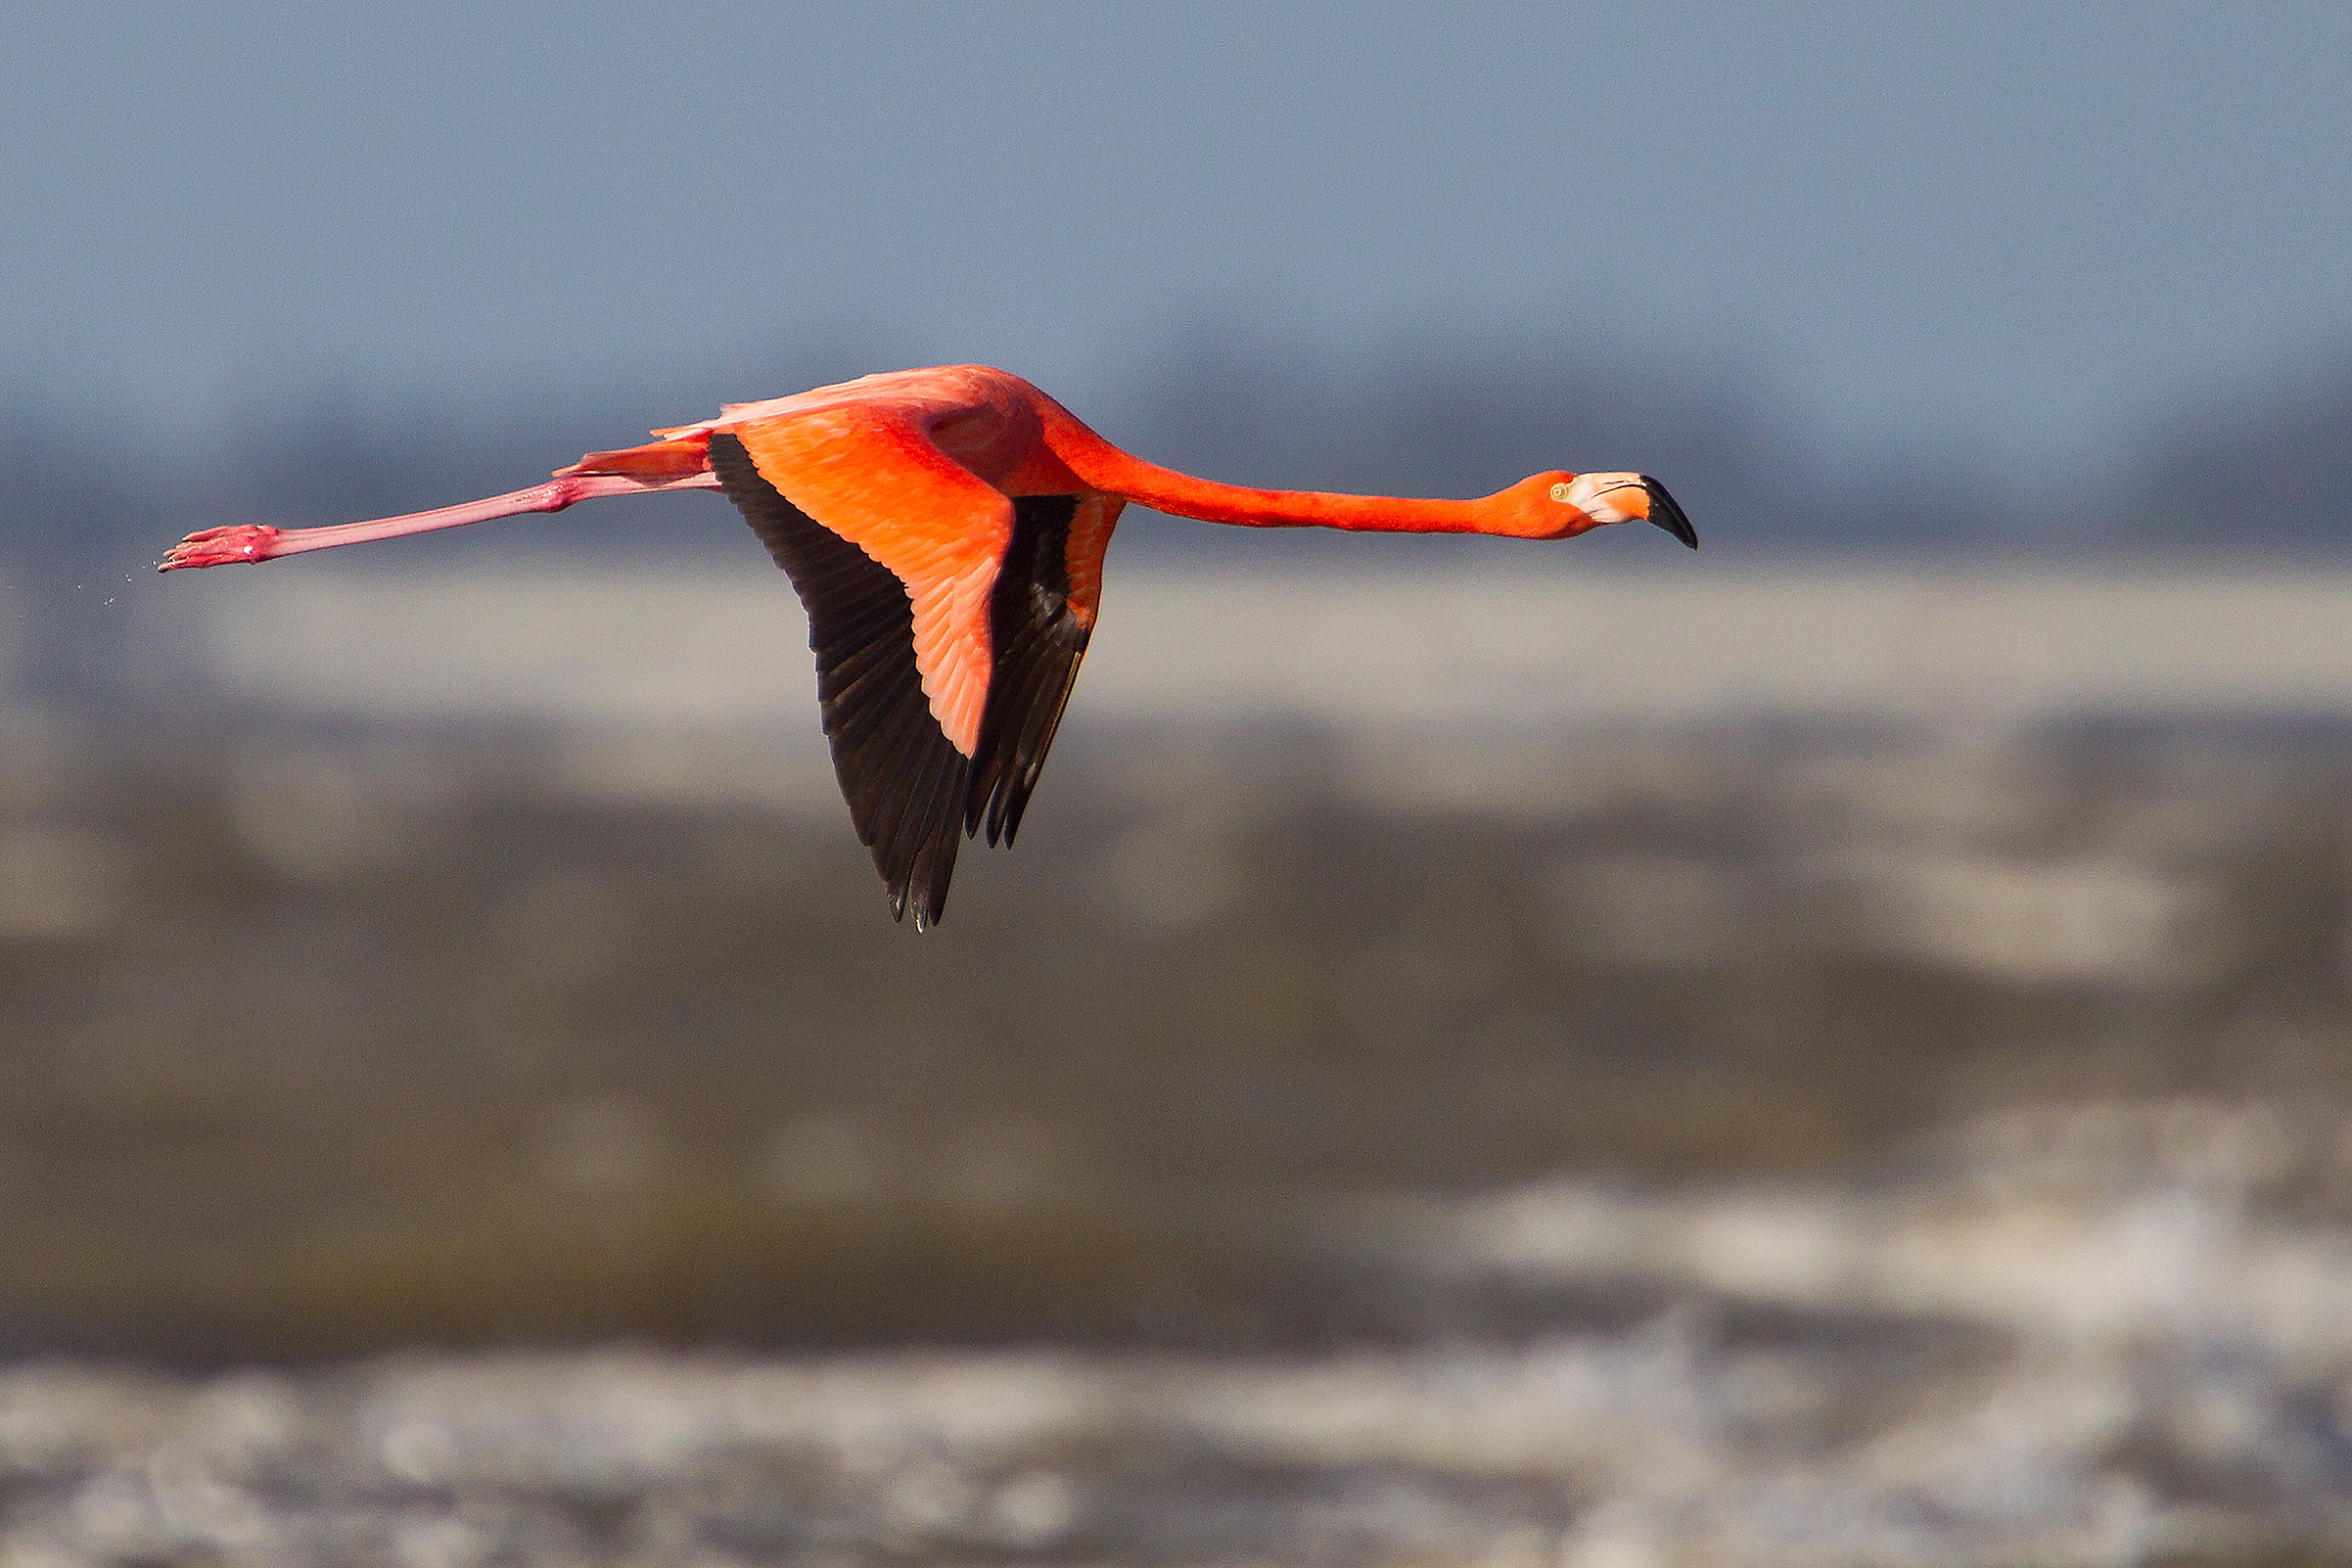 Greater Flamingo Phoenicopterus ruber flying low over lake